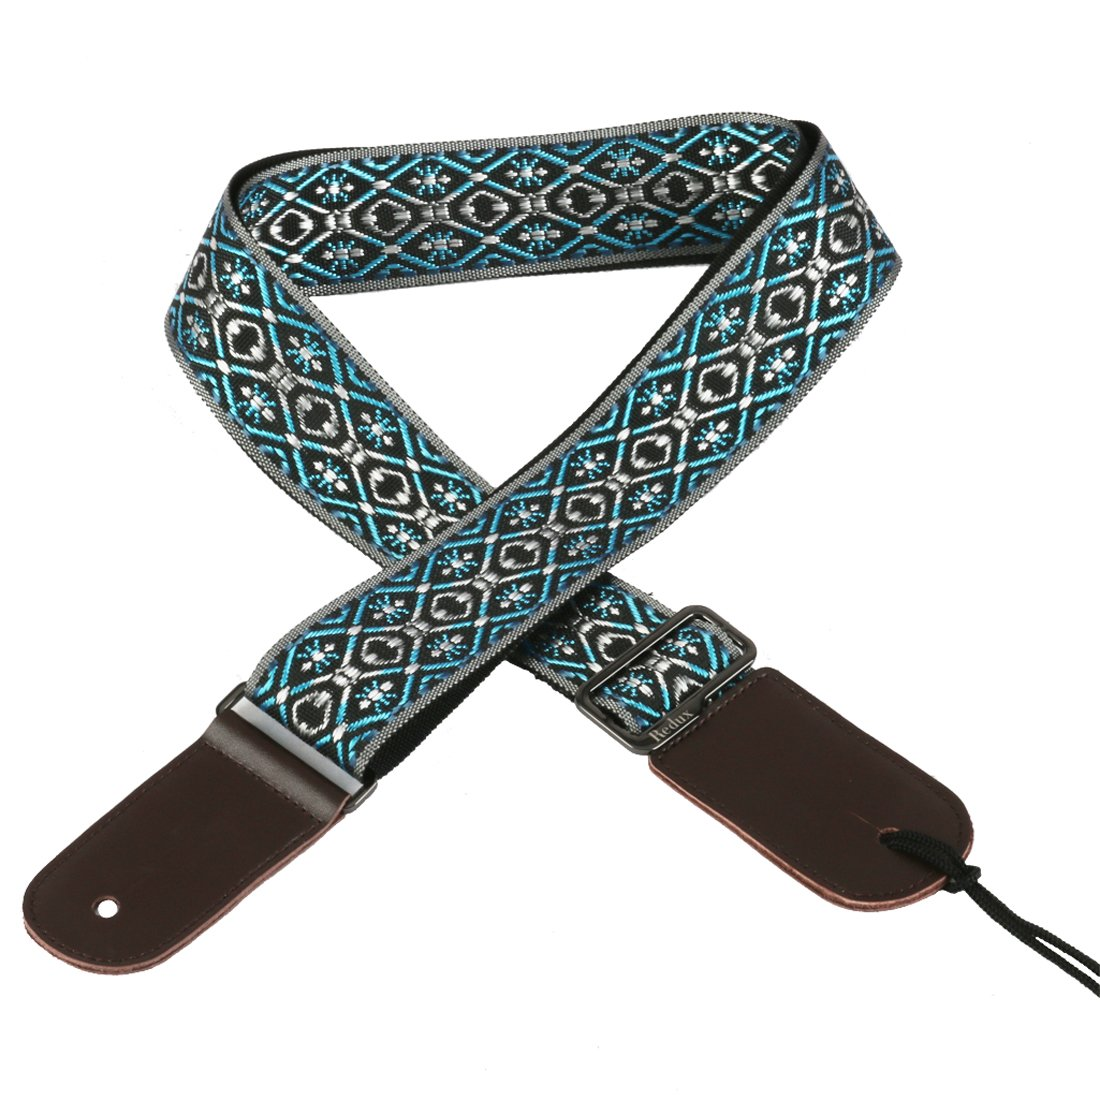 UBETA Guitar Strap Jacquard Weave Hootenanny Style & Genuine Leather Ends Apply to Acoustic and Electric Guitar, Bass - C17 HFS-02